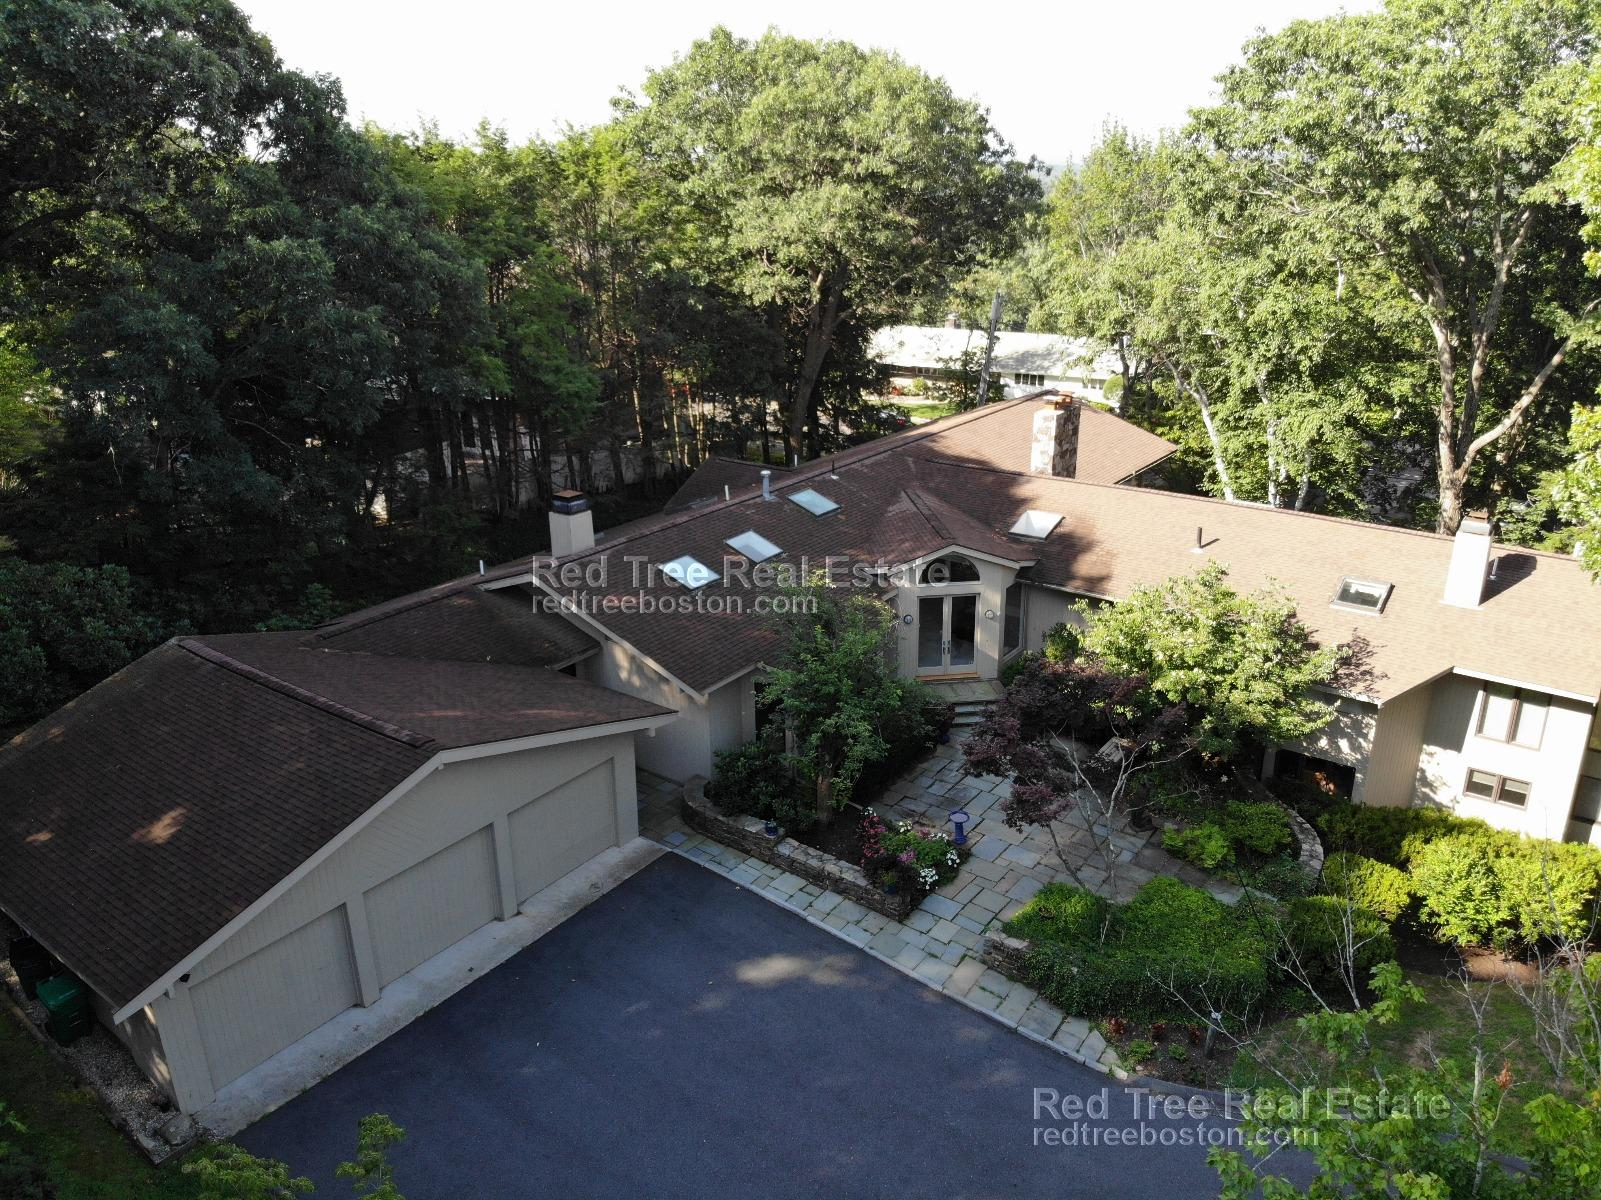 6 Bd on Baldpate Hill Rd., 4.5 Bath, Laundry in Building, Dining Room